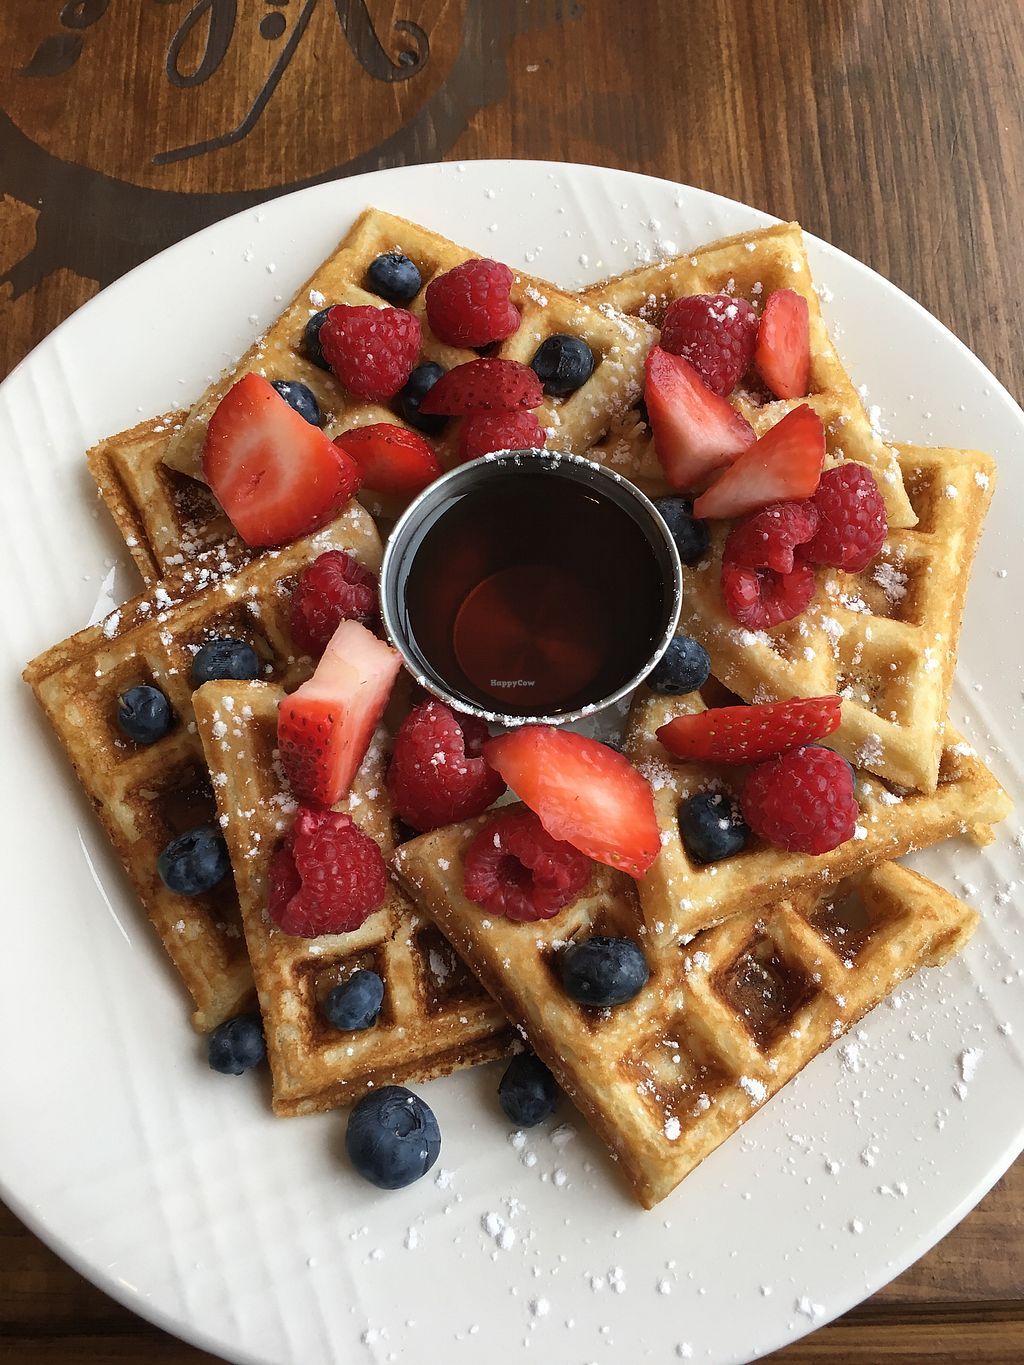 """Photo of Vibe Eatery & Juice  by <a href=""""/members/profile/ChristopherInfantry"""">ChristopherInfantry</a> <br/>waffles! <br/> July 13, 2017  - <a href='/contact/abuse/image/96101/279824'>Report</a>"""